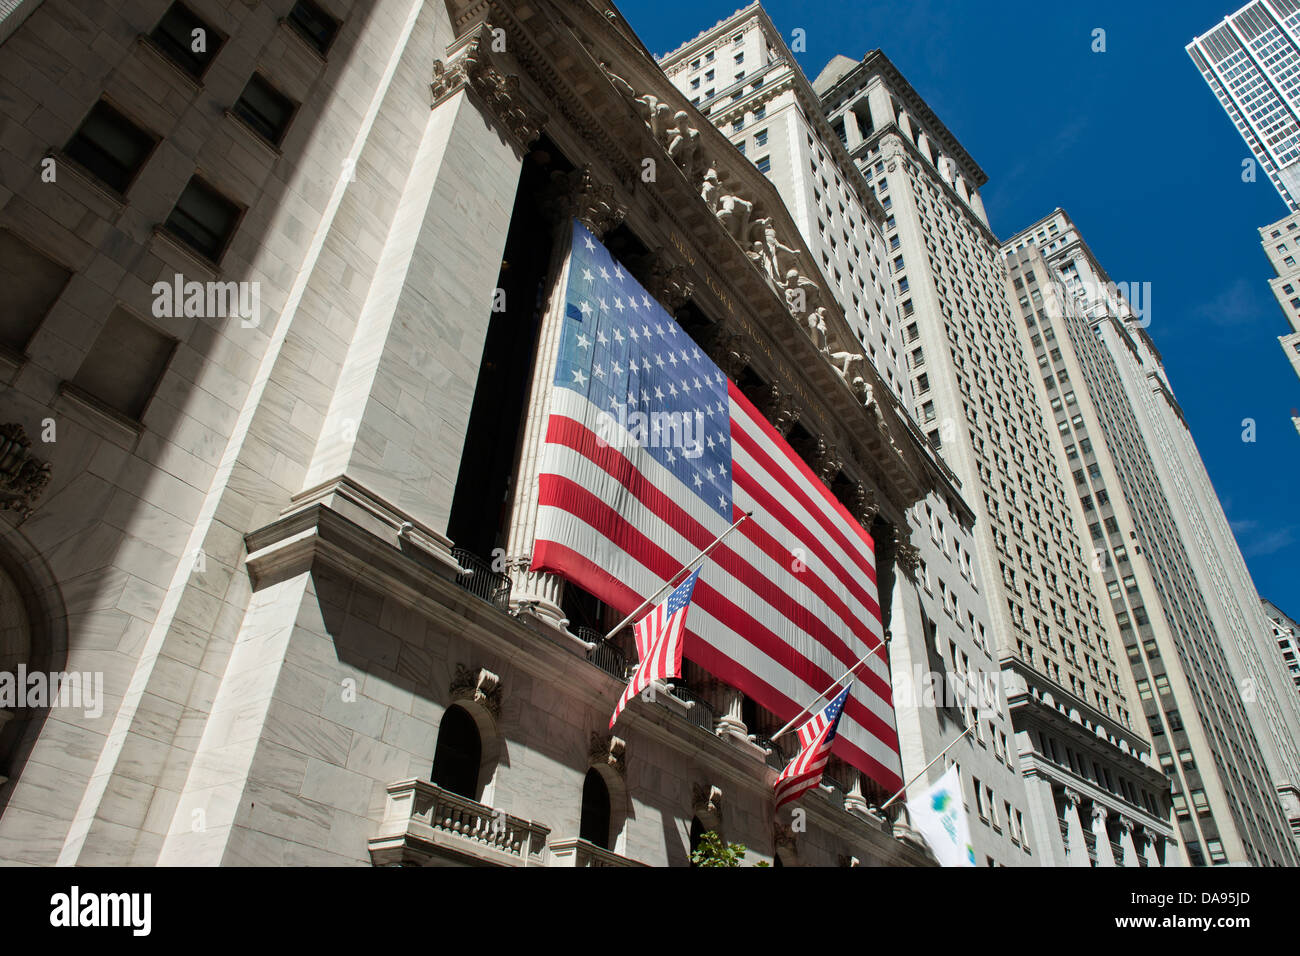 FRONT FACADE NEW YORK STOCK EXCHANGE BUILDING BROAD STREET DOWNTOWN MANHATTAN NEW YORK USA - Stock Image